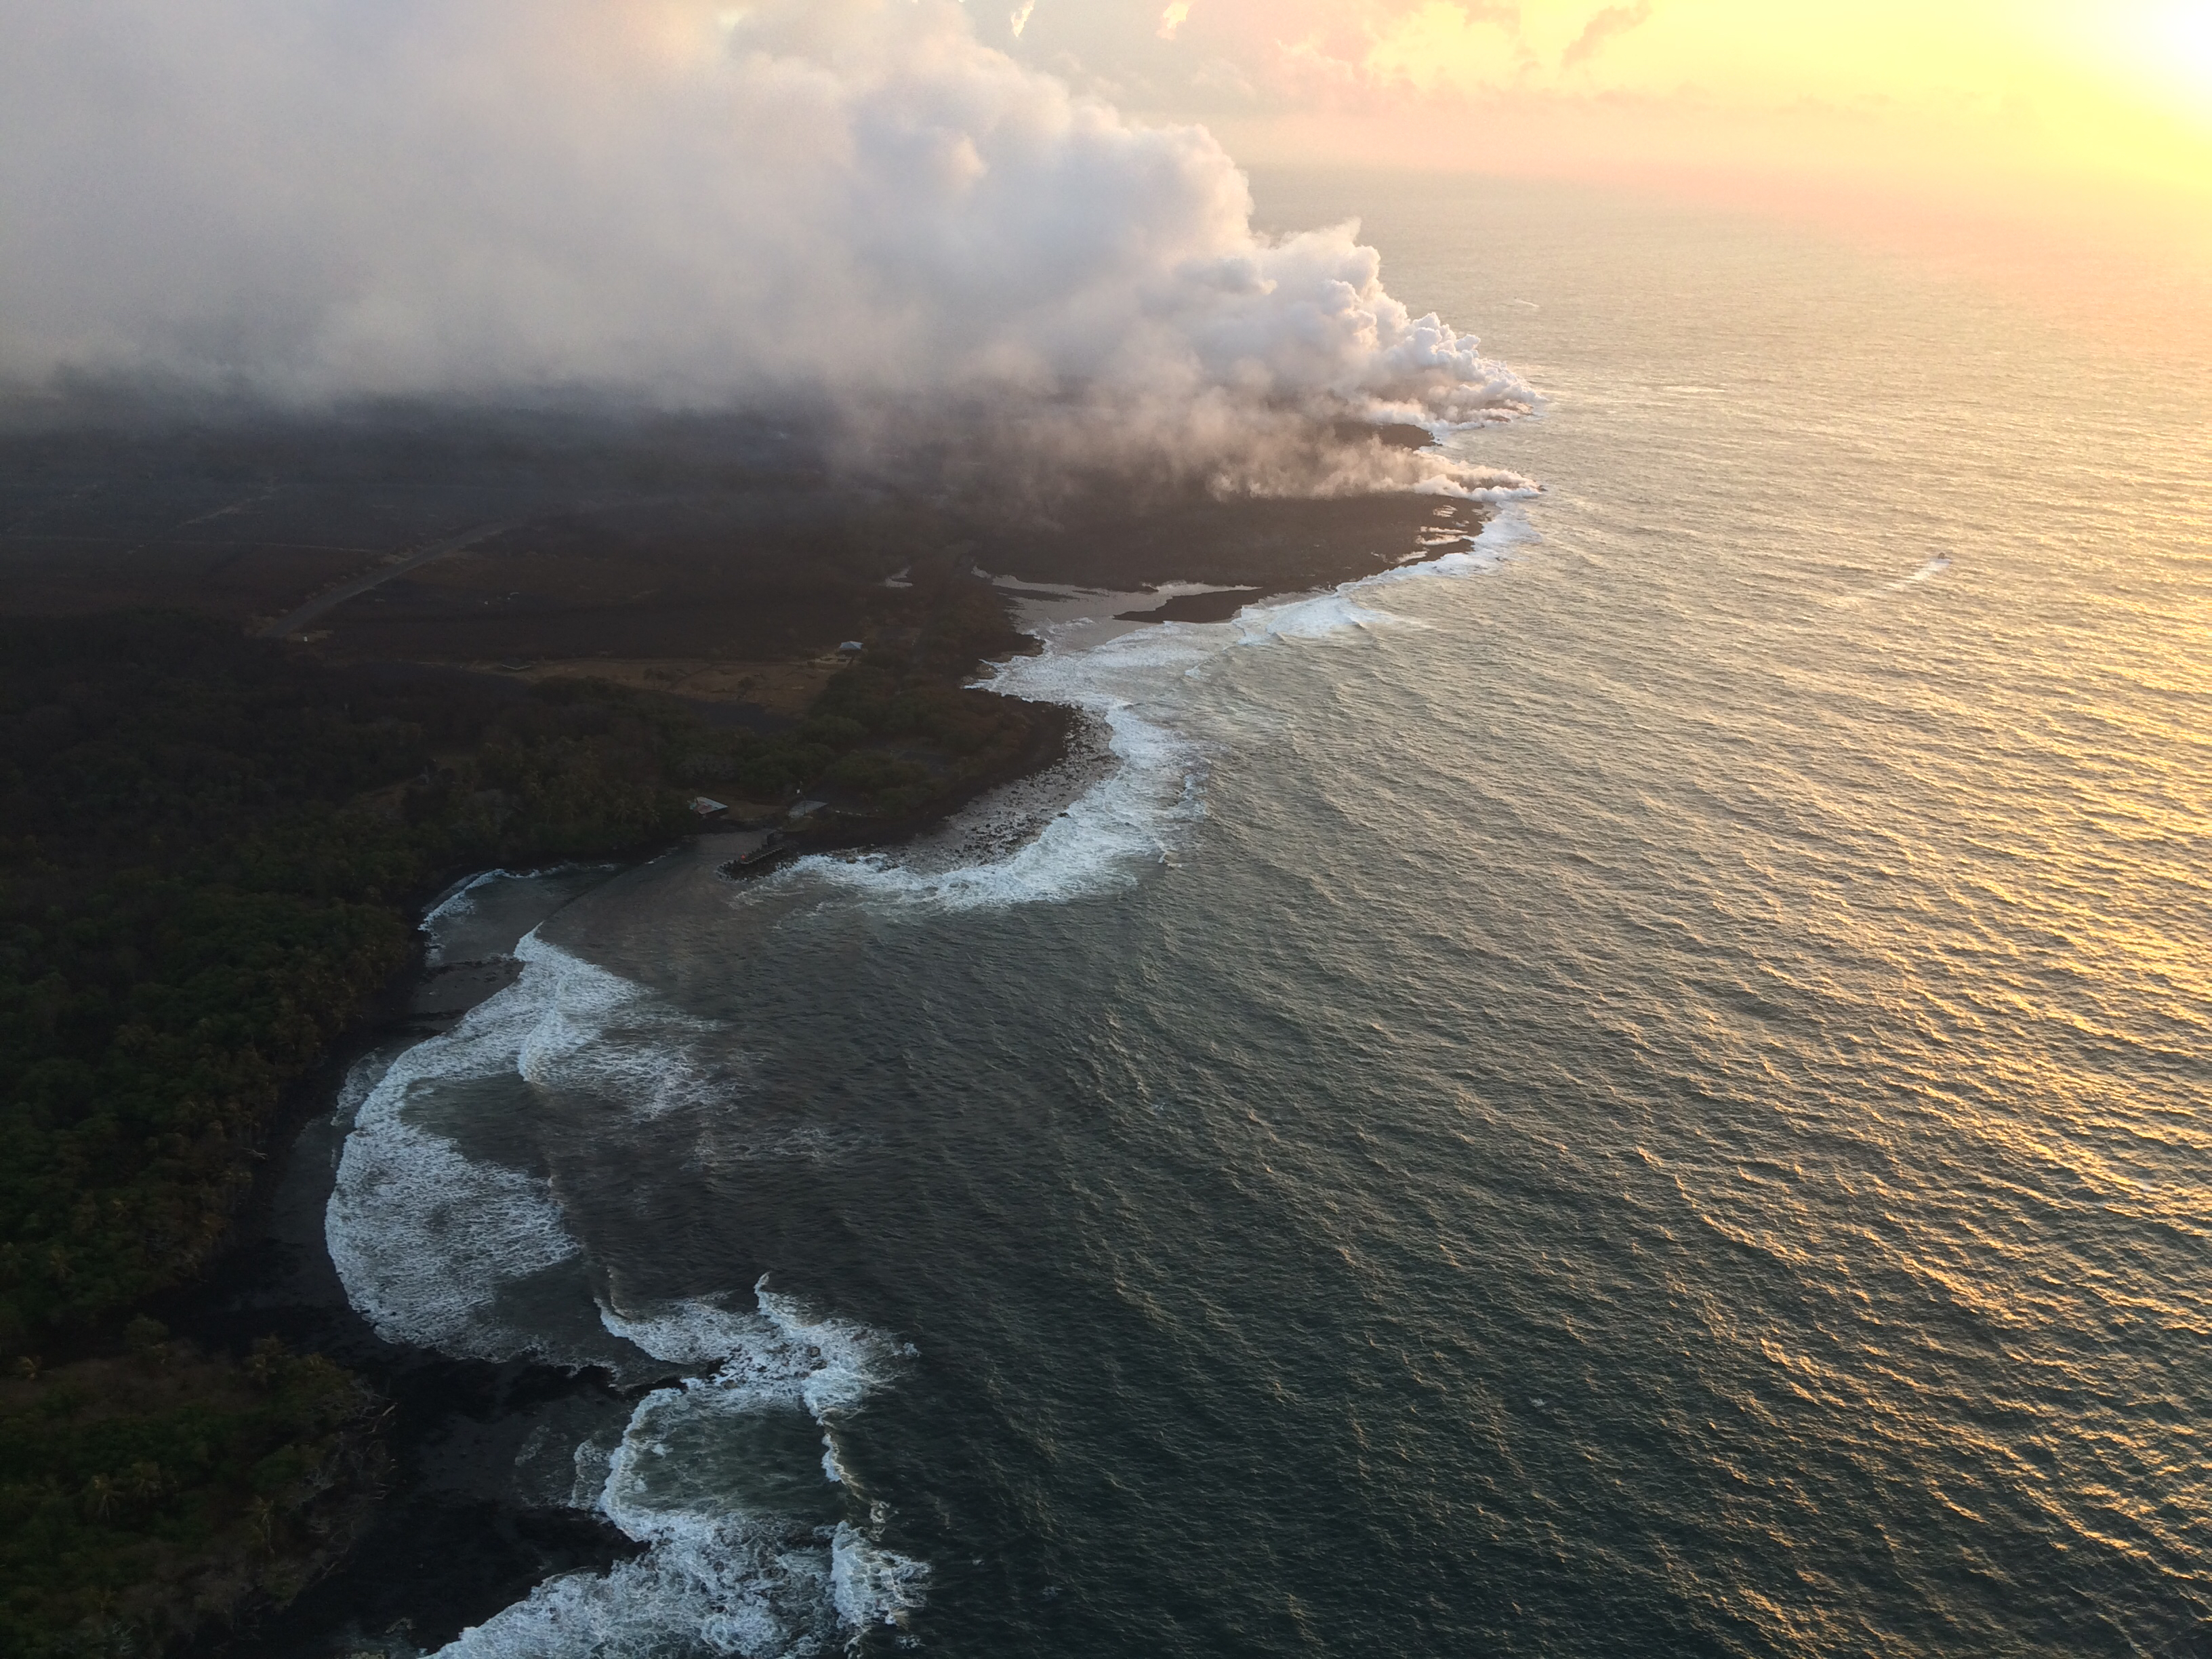 Third Circuit Court Upholds Land Board's Decision On Illegal Lava Boat Tours